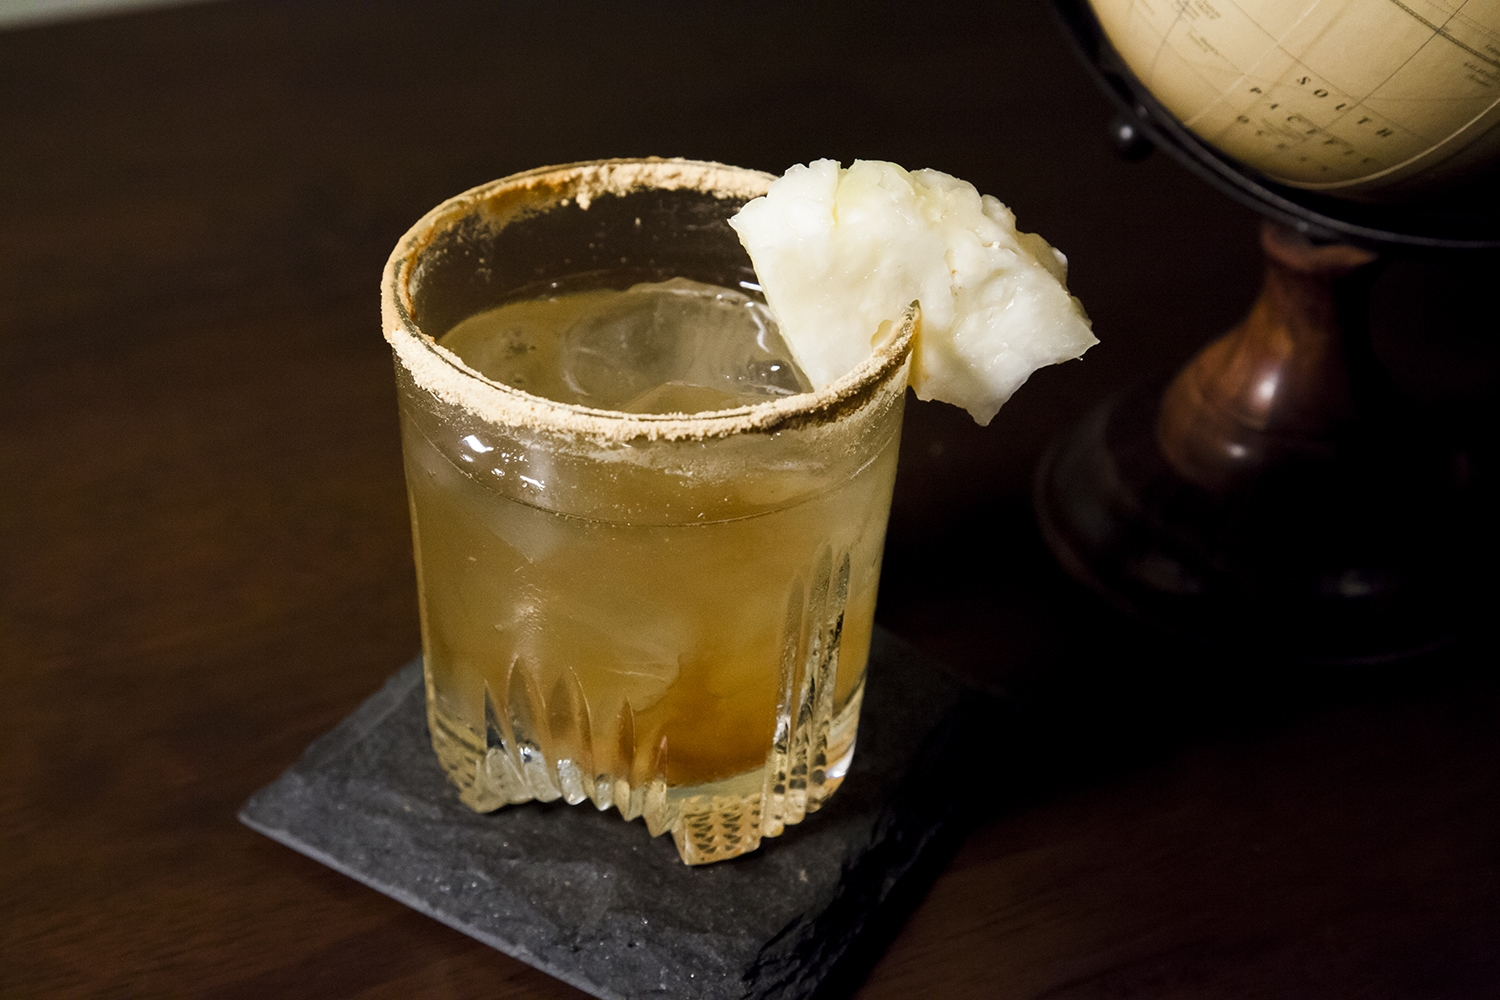 Rye and Ginger is a classic, but the Aziz adds that extra something by adding pineapple juice and Chambord.